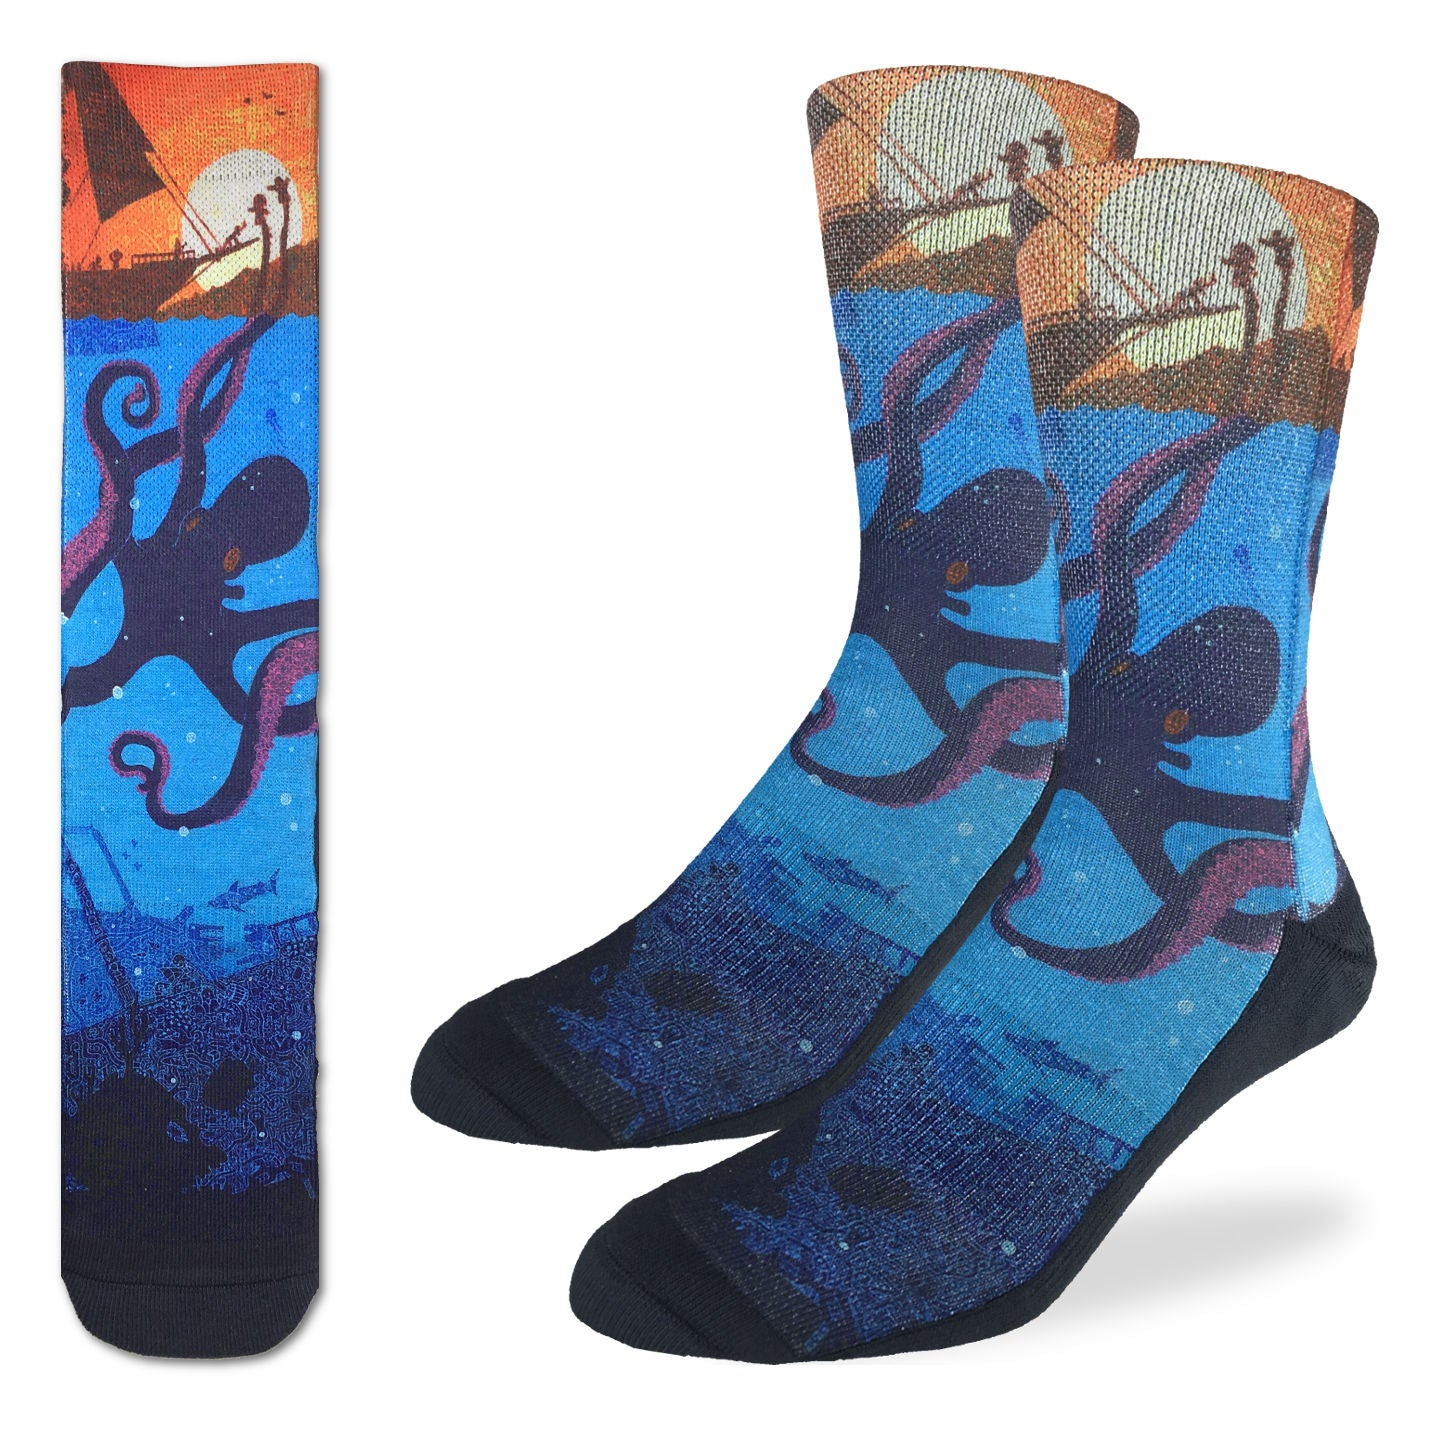 Men's Octopus Socks - Good Luck Sock